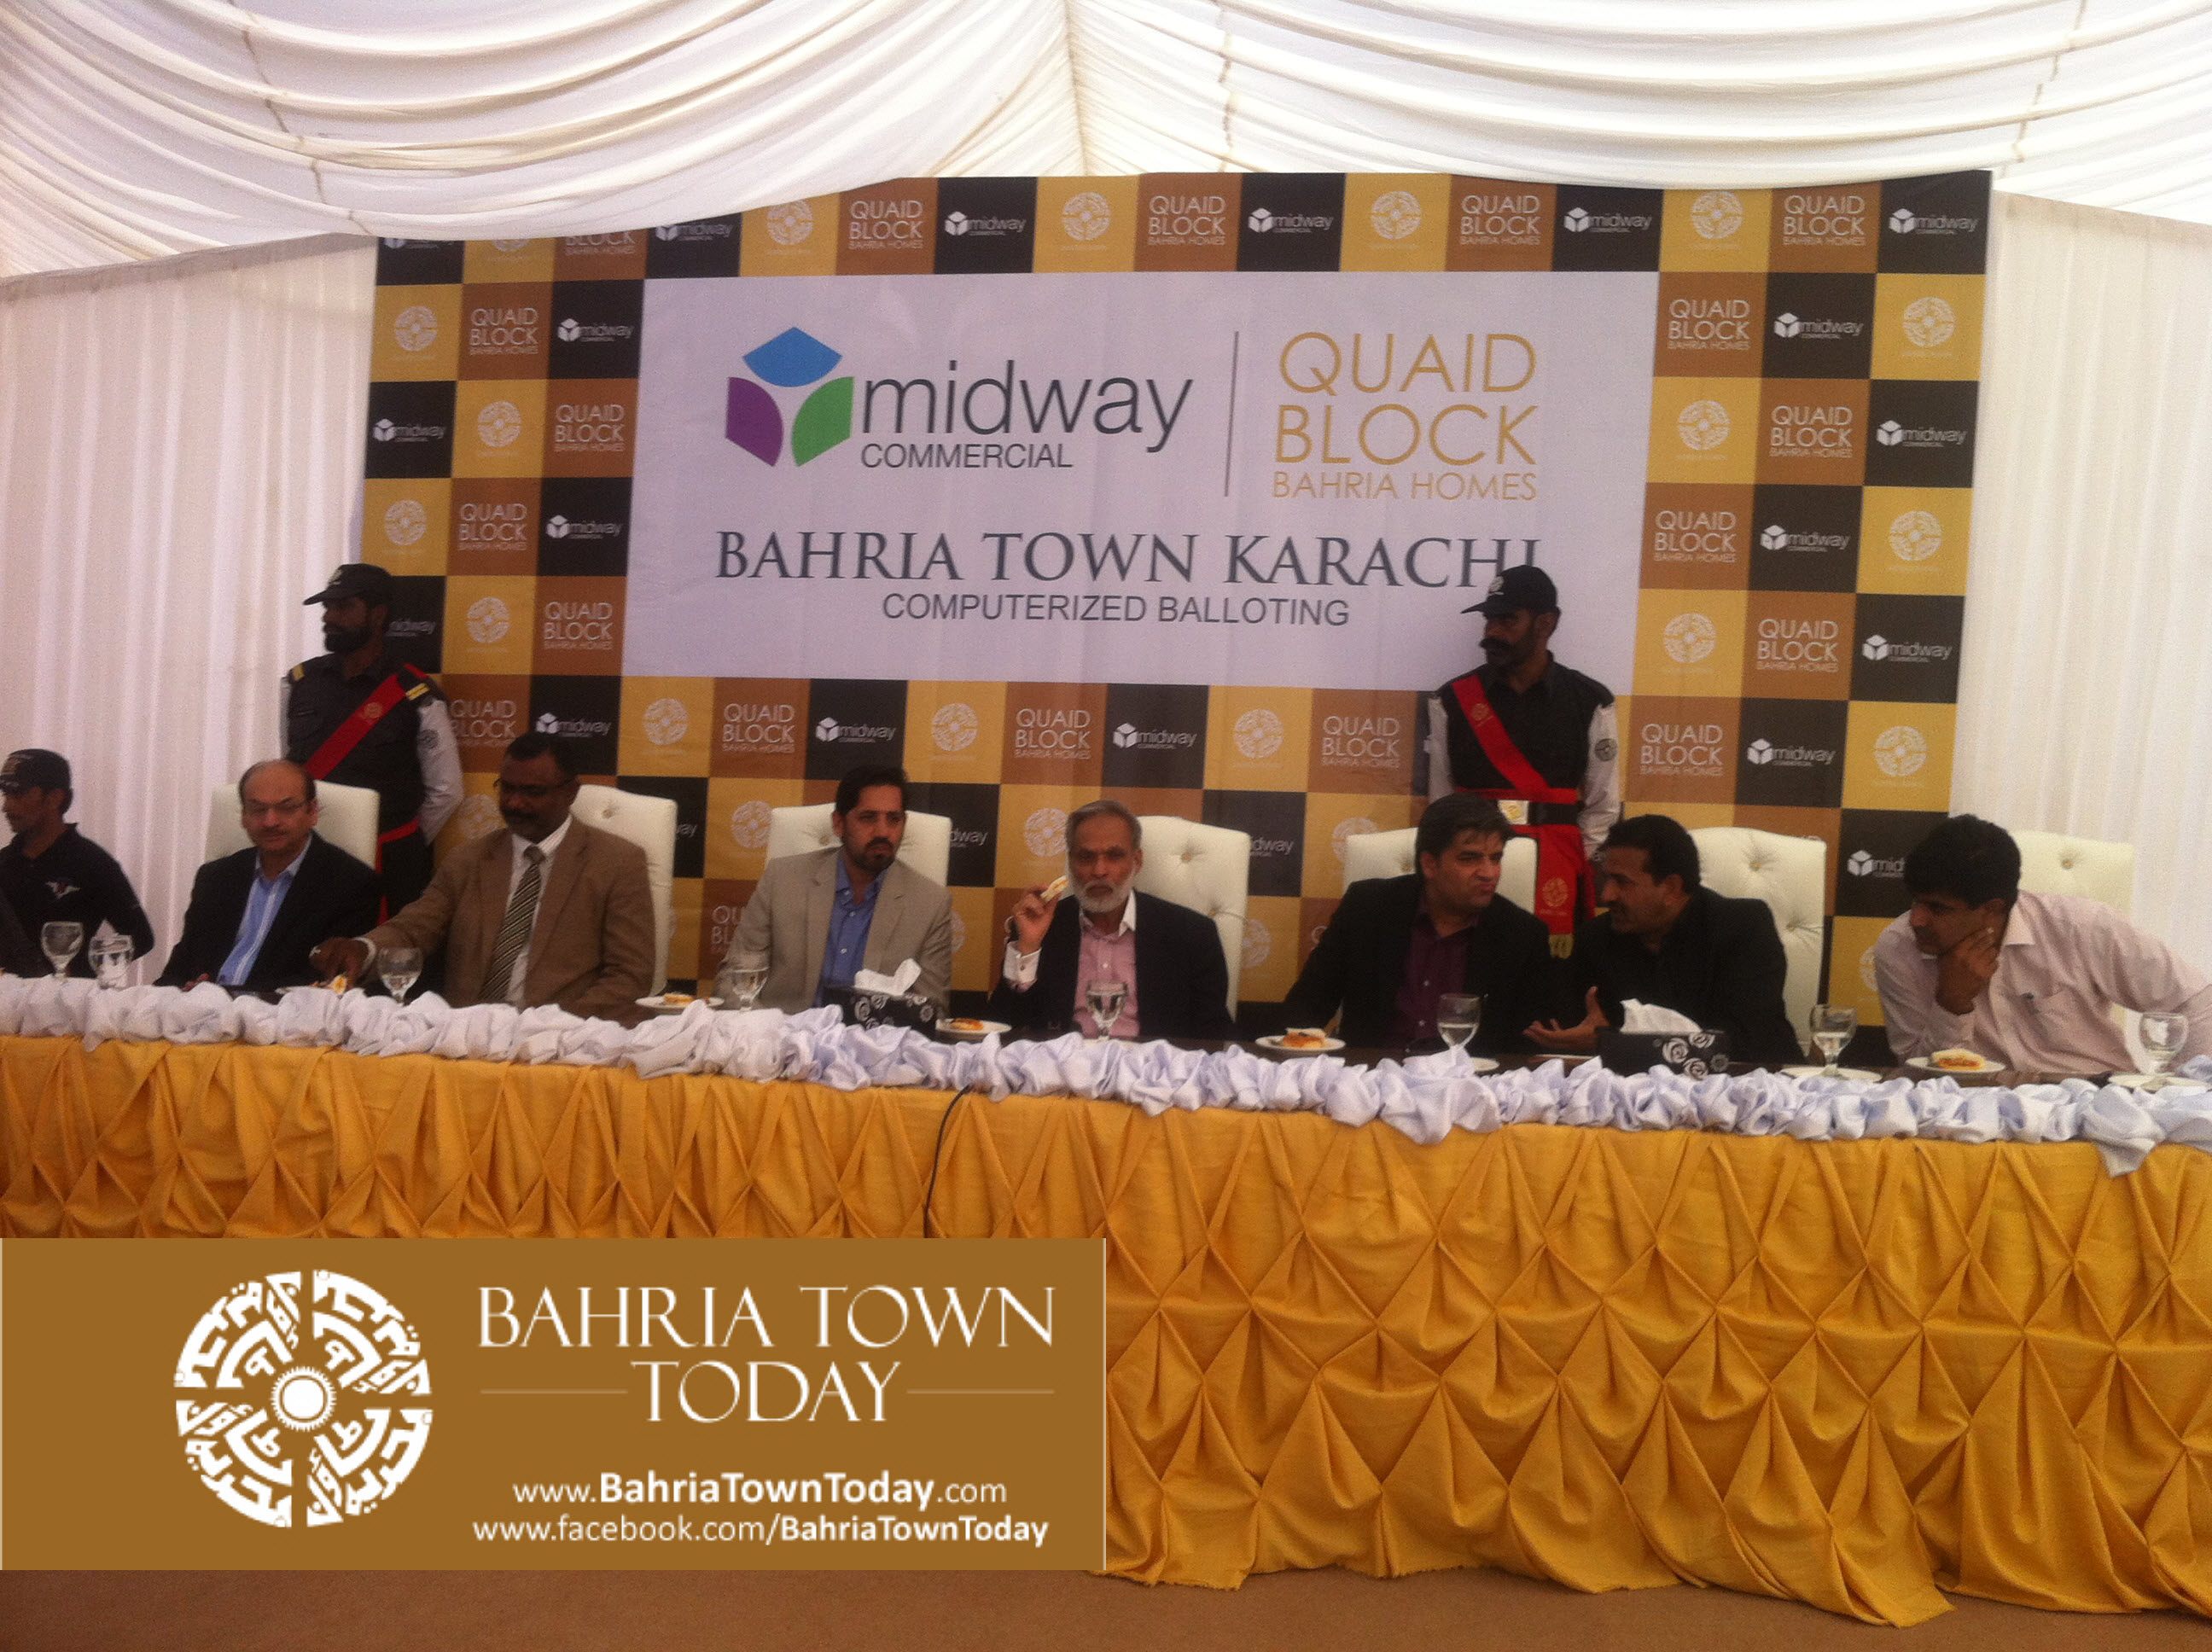 [Pictures] Computerized Balloting of Mid-Way Commercial and Quaid Villas 2015 (21)